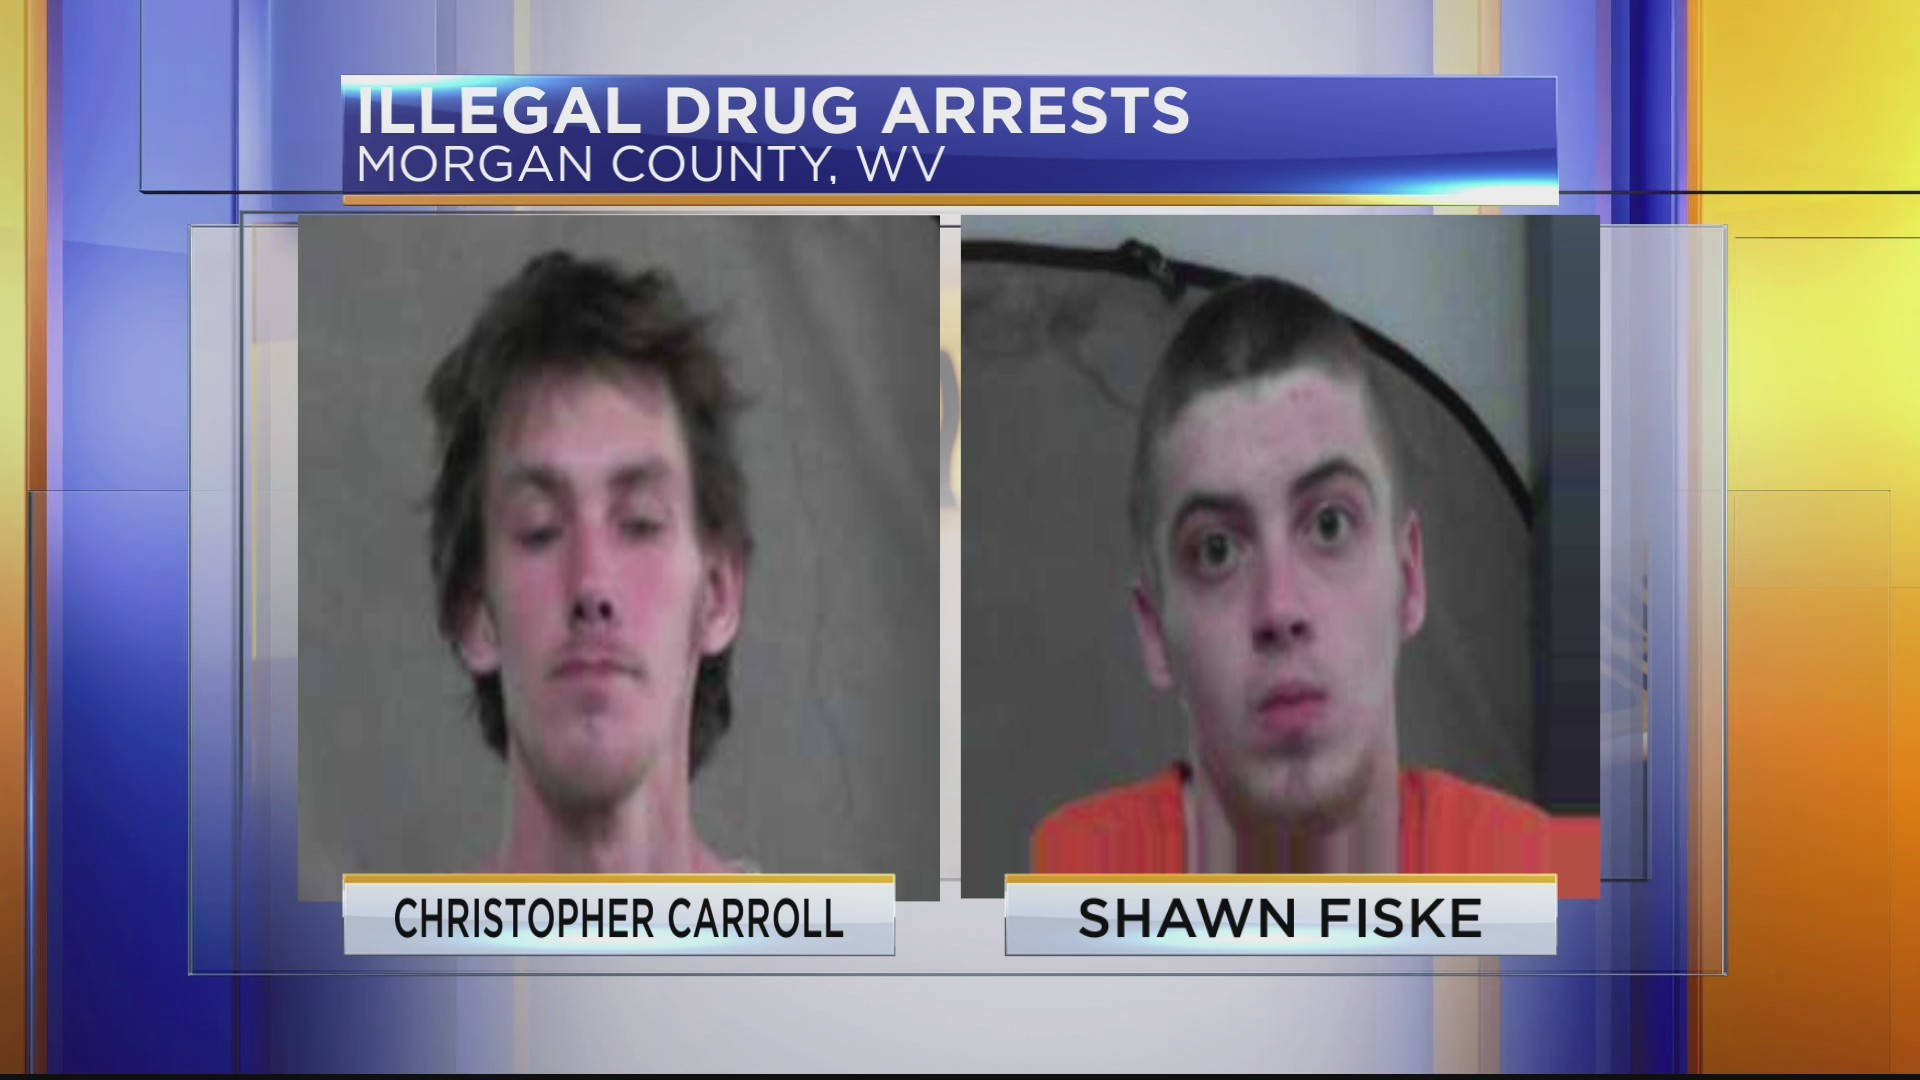 2 arrested in connection to illegal drug sales bust in